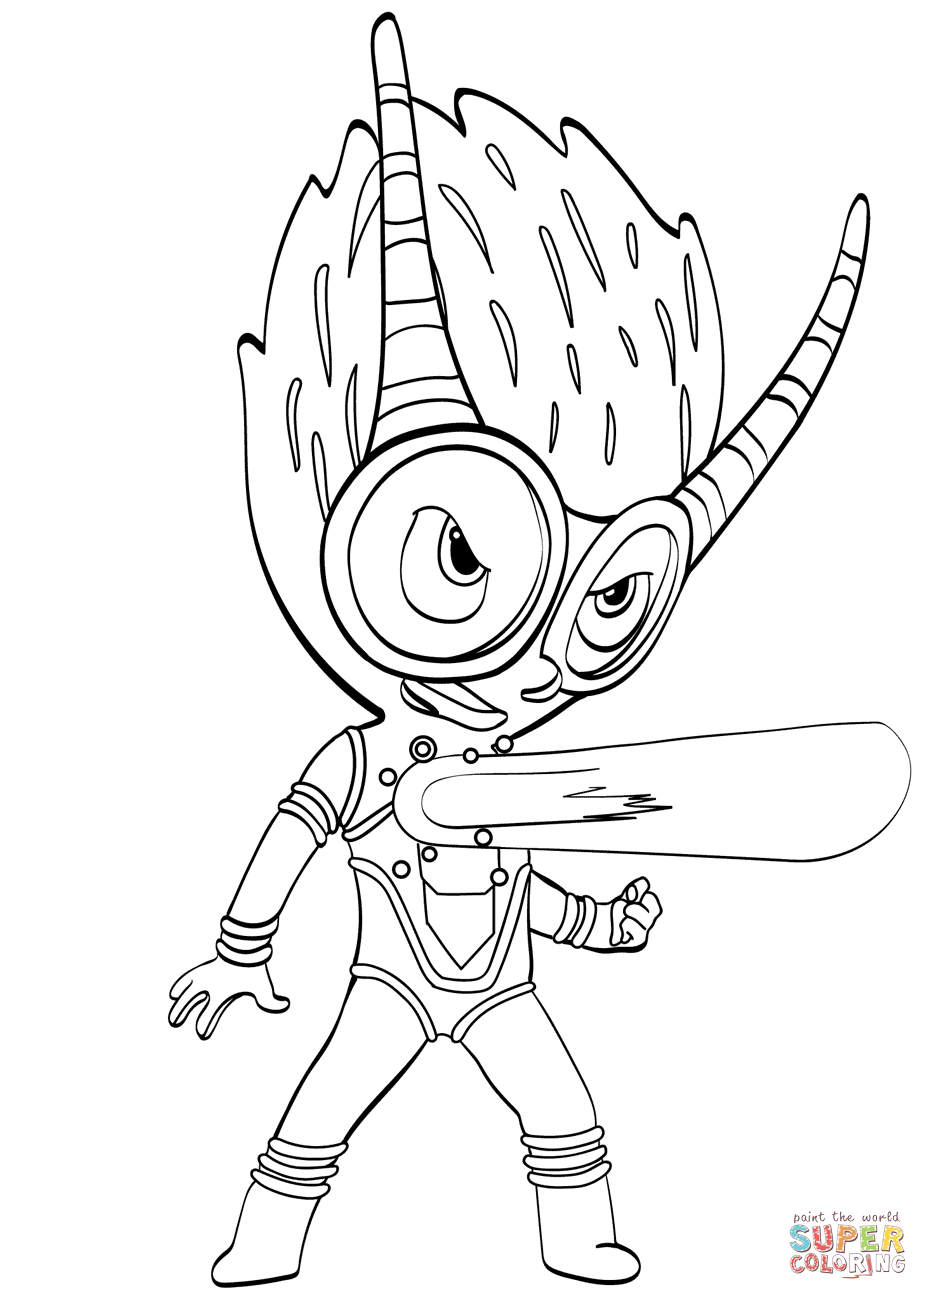 Firefly Villain From PJ Masks Coloring Page Free